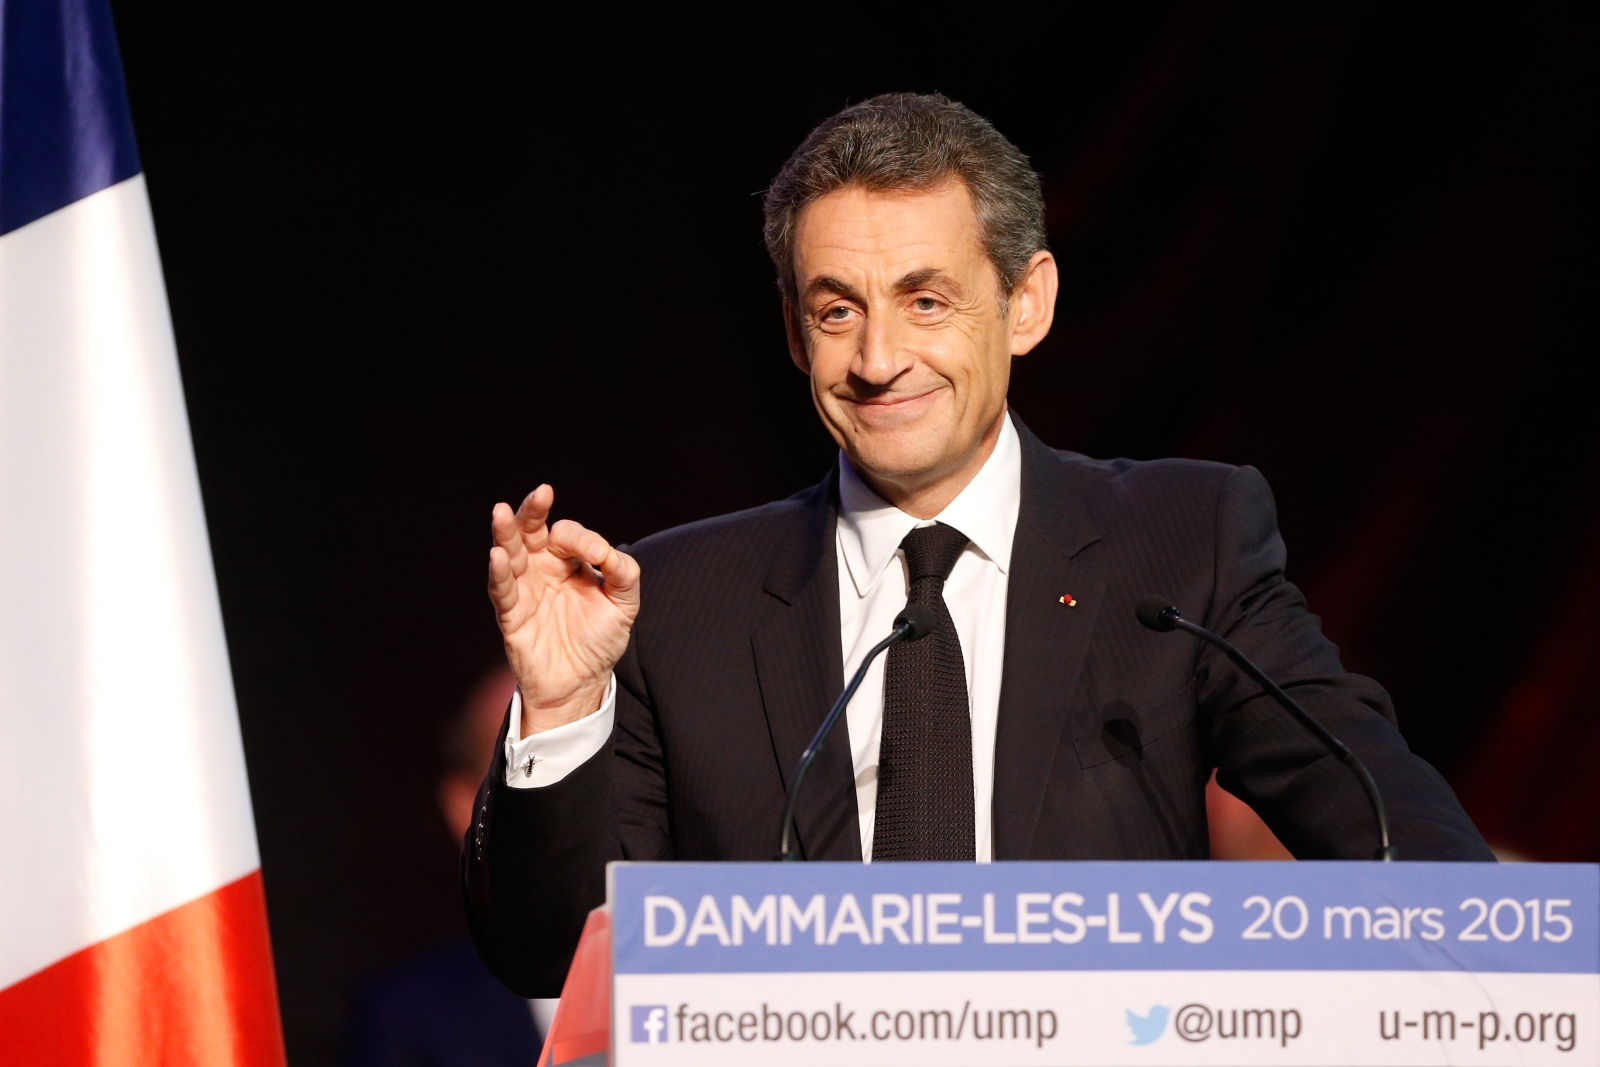 Nicolas Sarkozy's UMP party